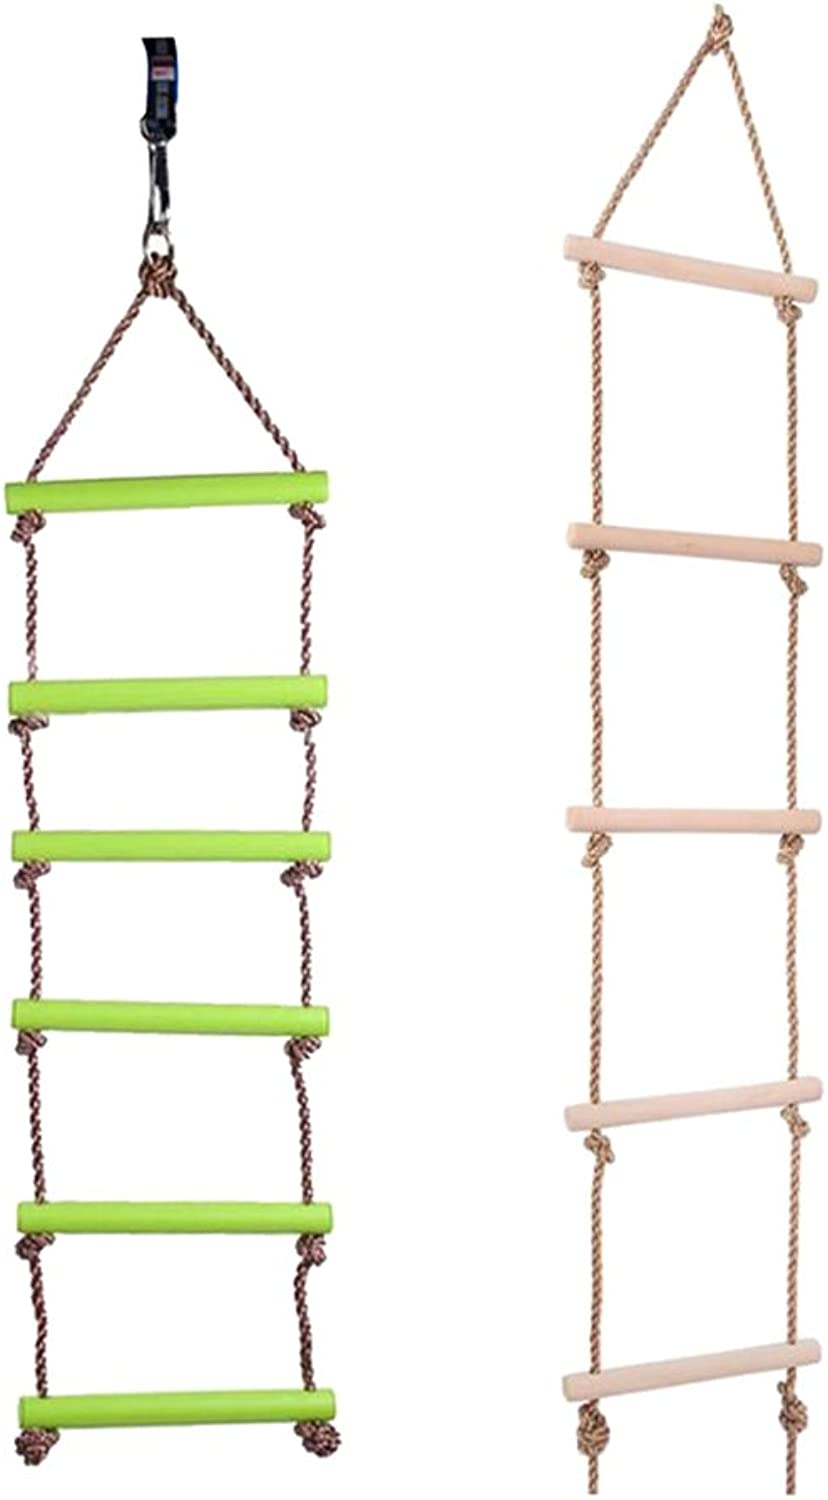 Homyl 2 Pcs 5 Rungs and 6 Rungs Rope Climbing Ladder Play Swing Set Kids Indoor & Outdoor Sports Activity Game Toy